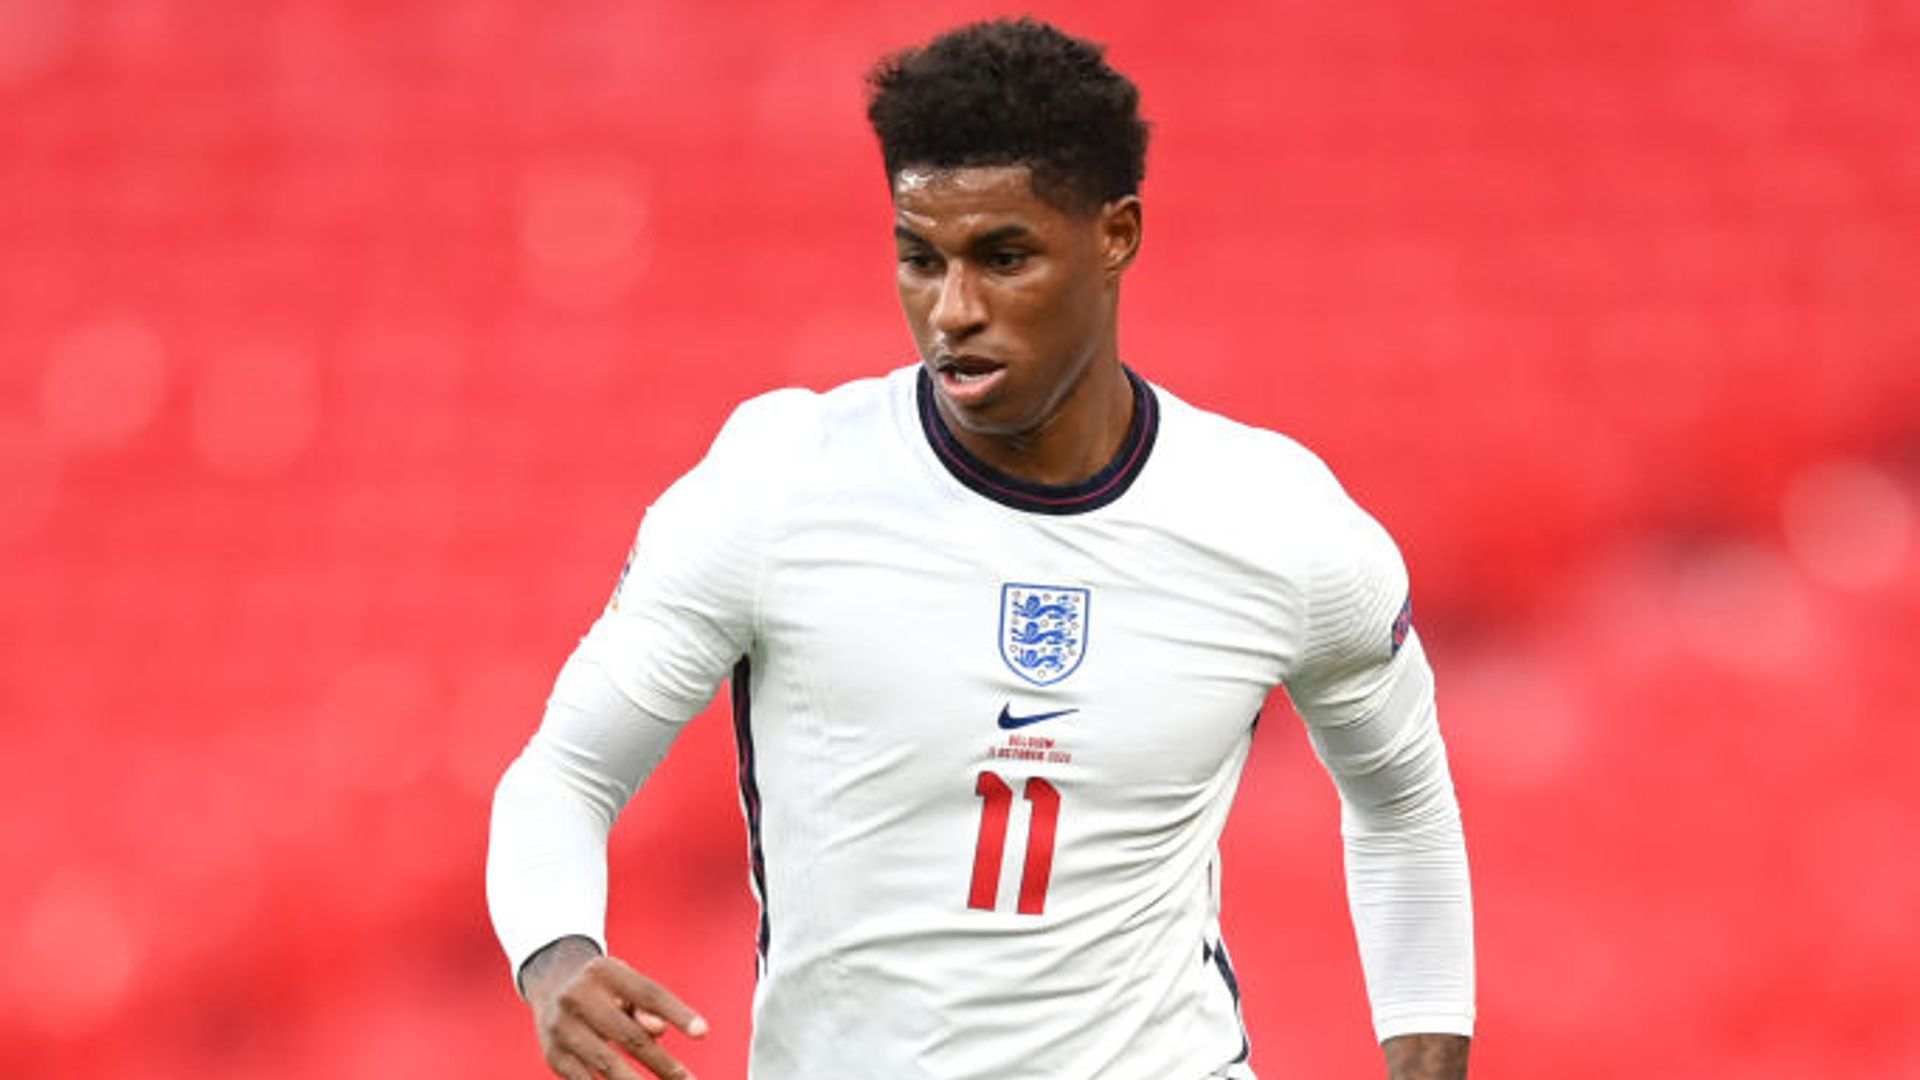 Rashford earns place on Football Black List - sky sports